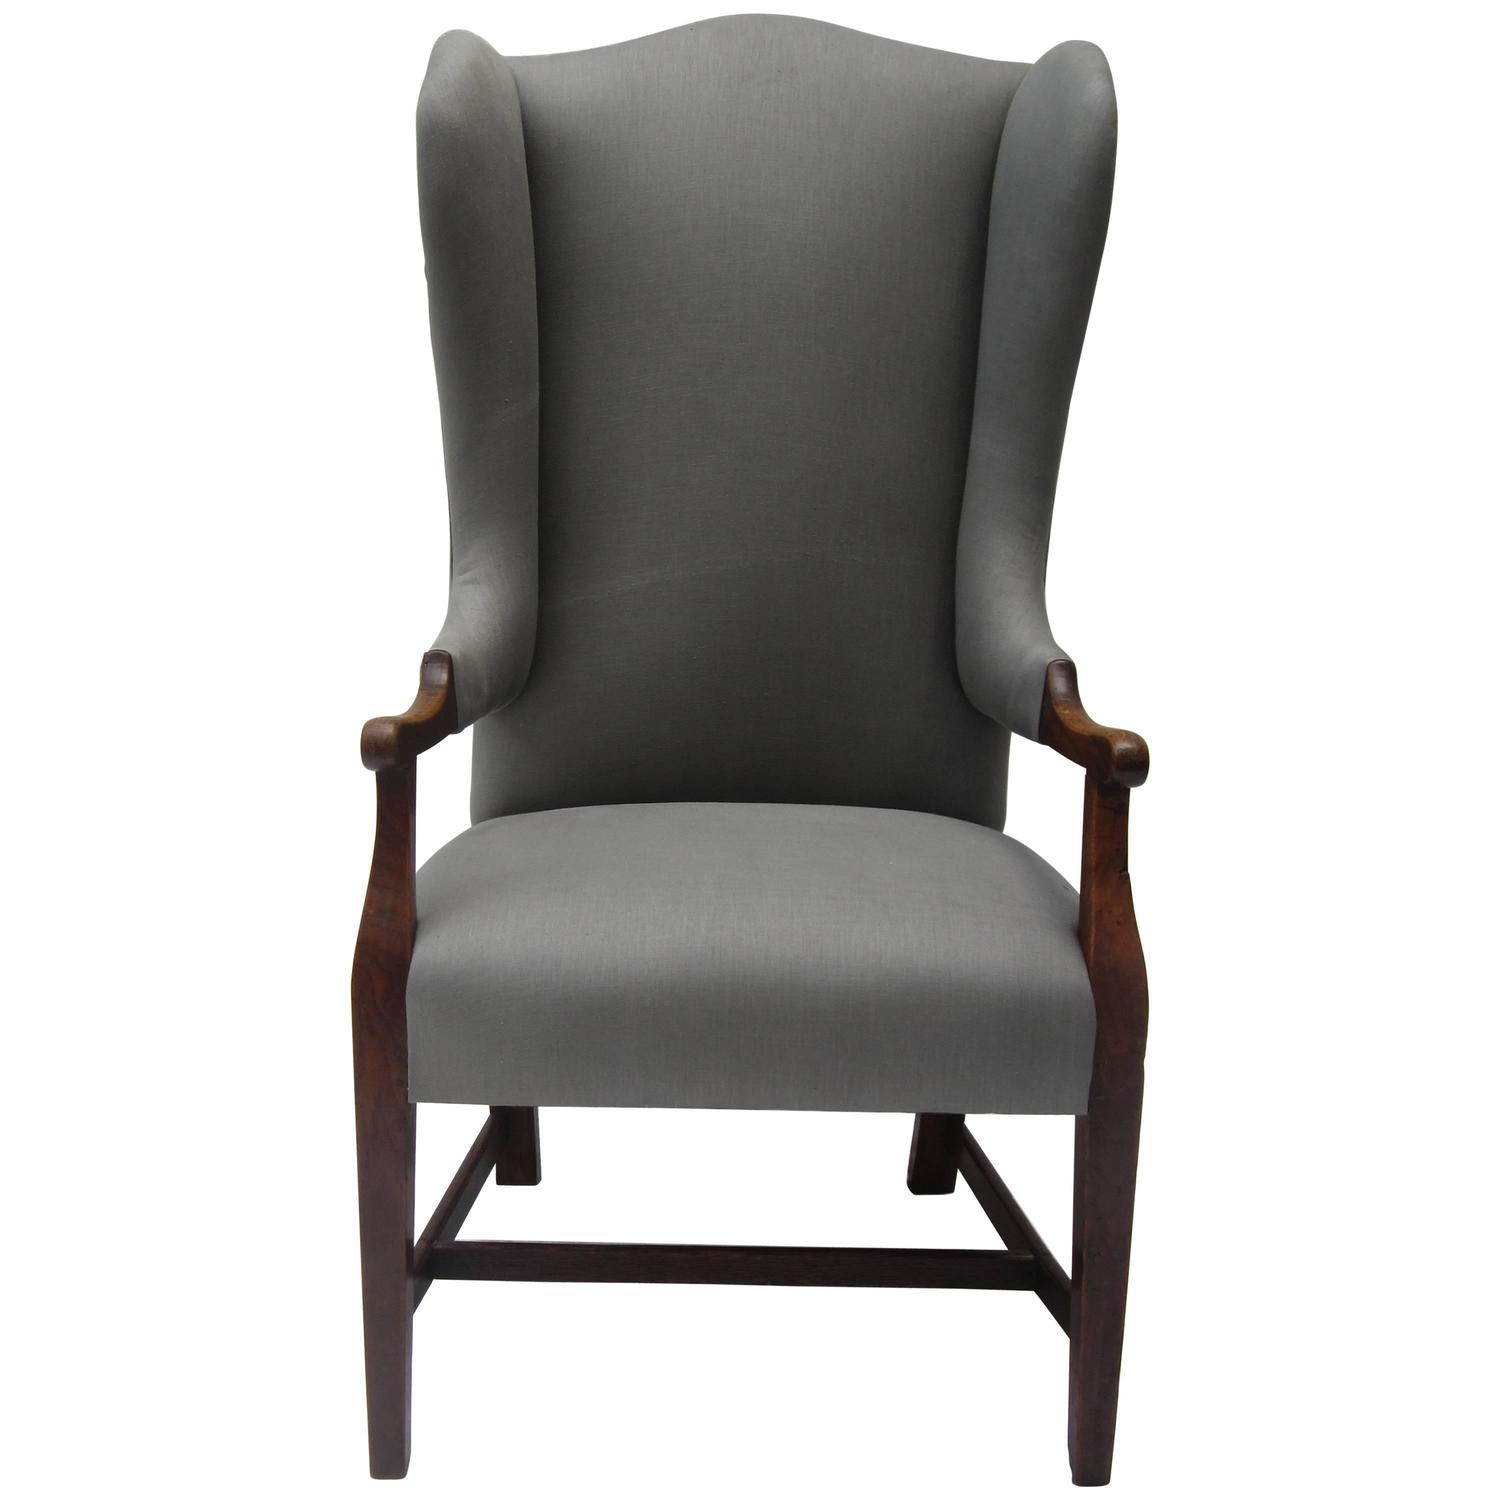 Petite Chairs 19th Century Petite Wing Chair At 1stdibs